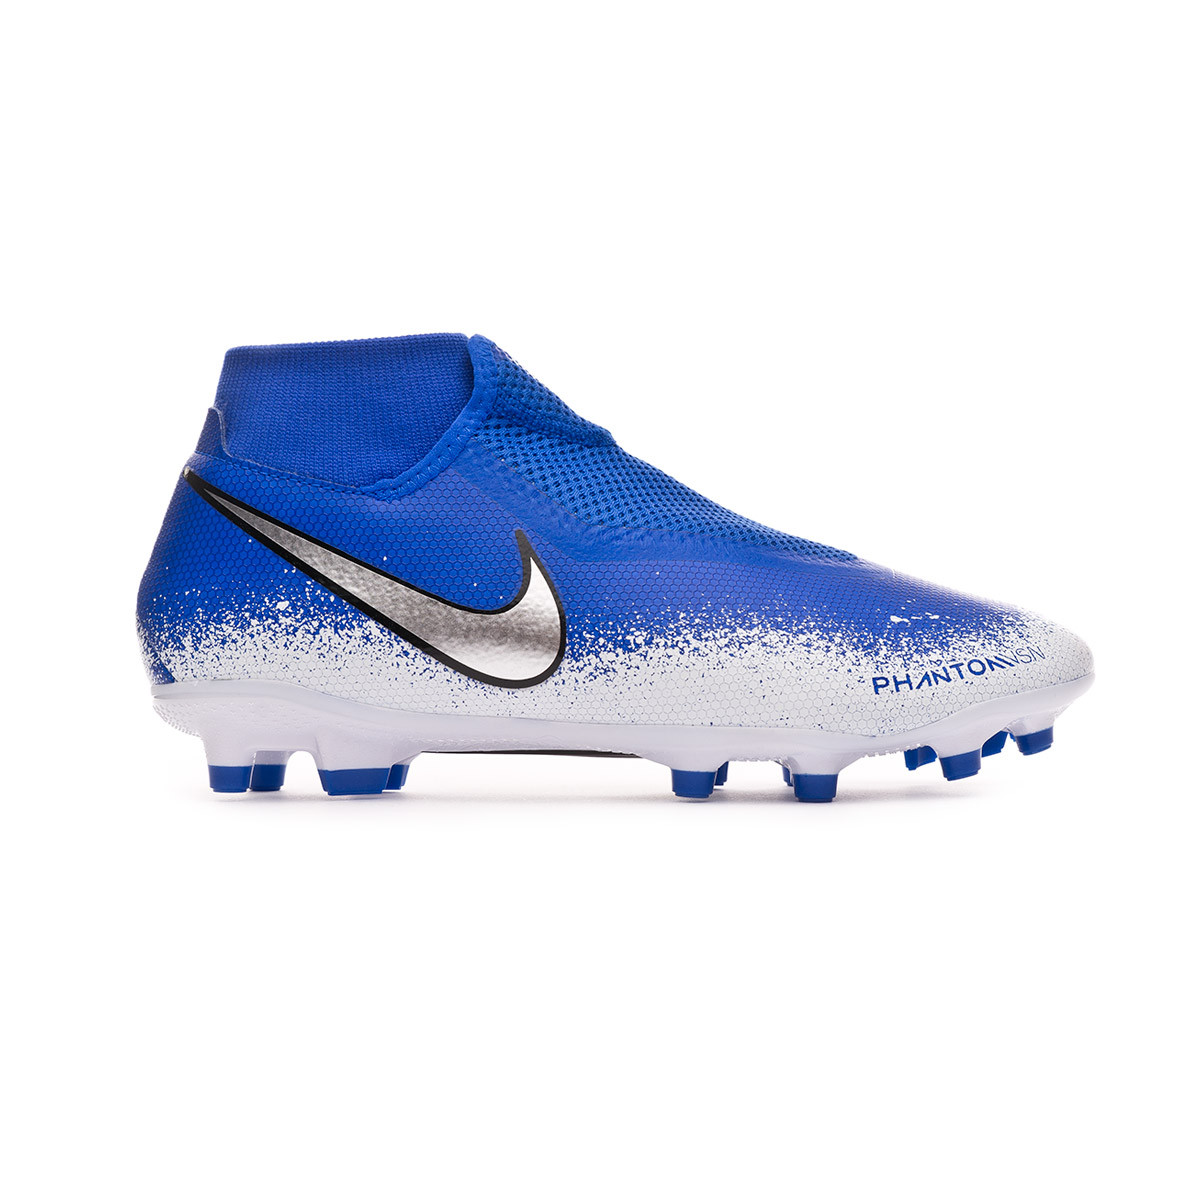 4ee8c487c Football Boots Nike Phantom Vision Academy DF FG/MG Racer blue-Chrome-White  - Football store Fútbol Emotion